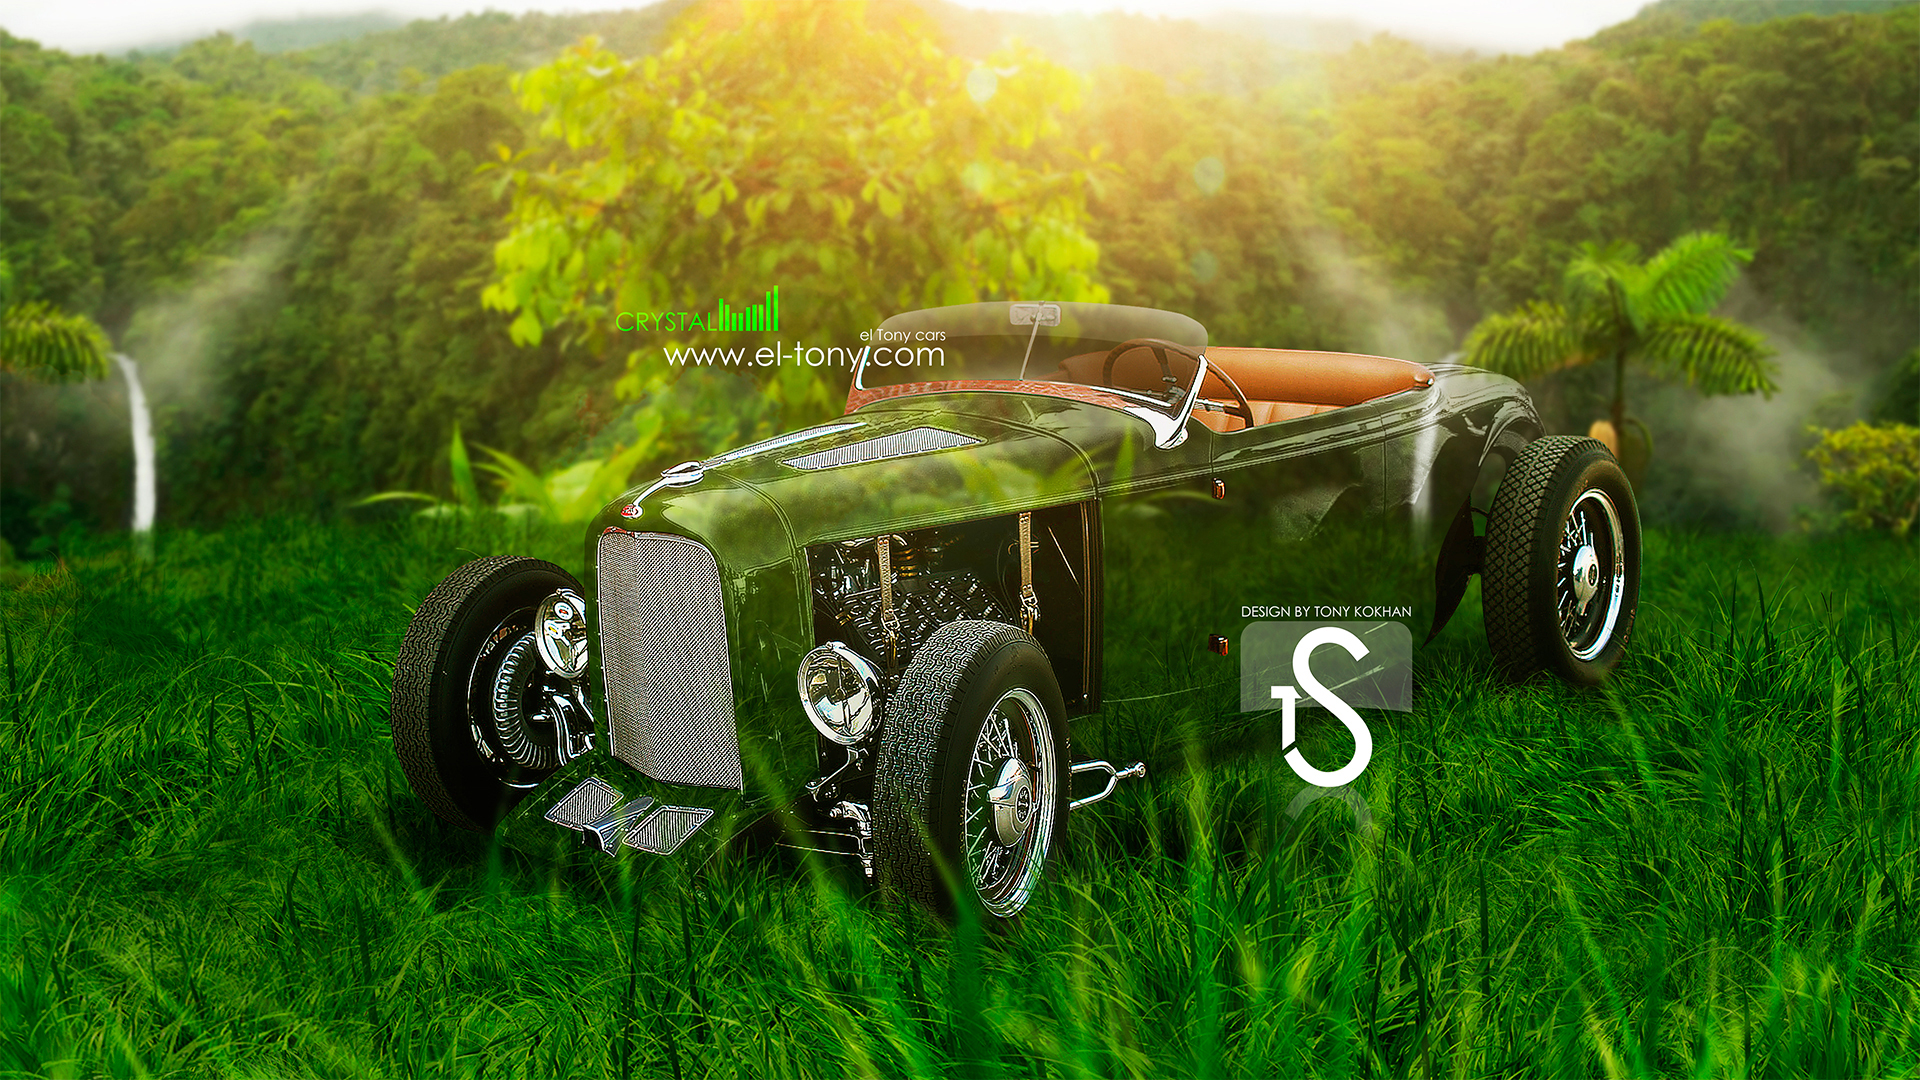 retro-hot-rod-old-crystal-car-2013-nature-green-grass-hd-wallpapers